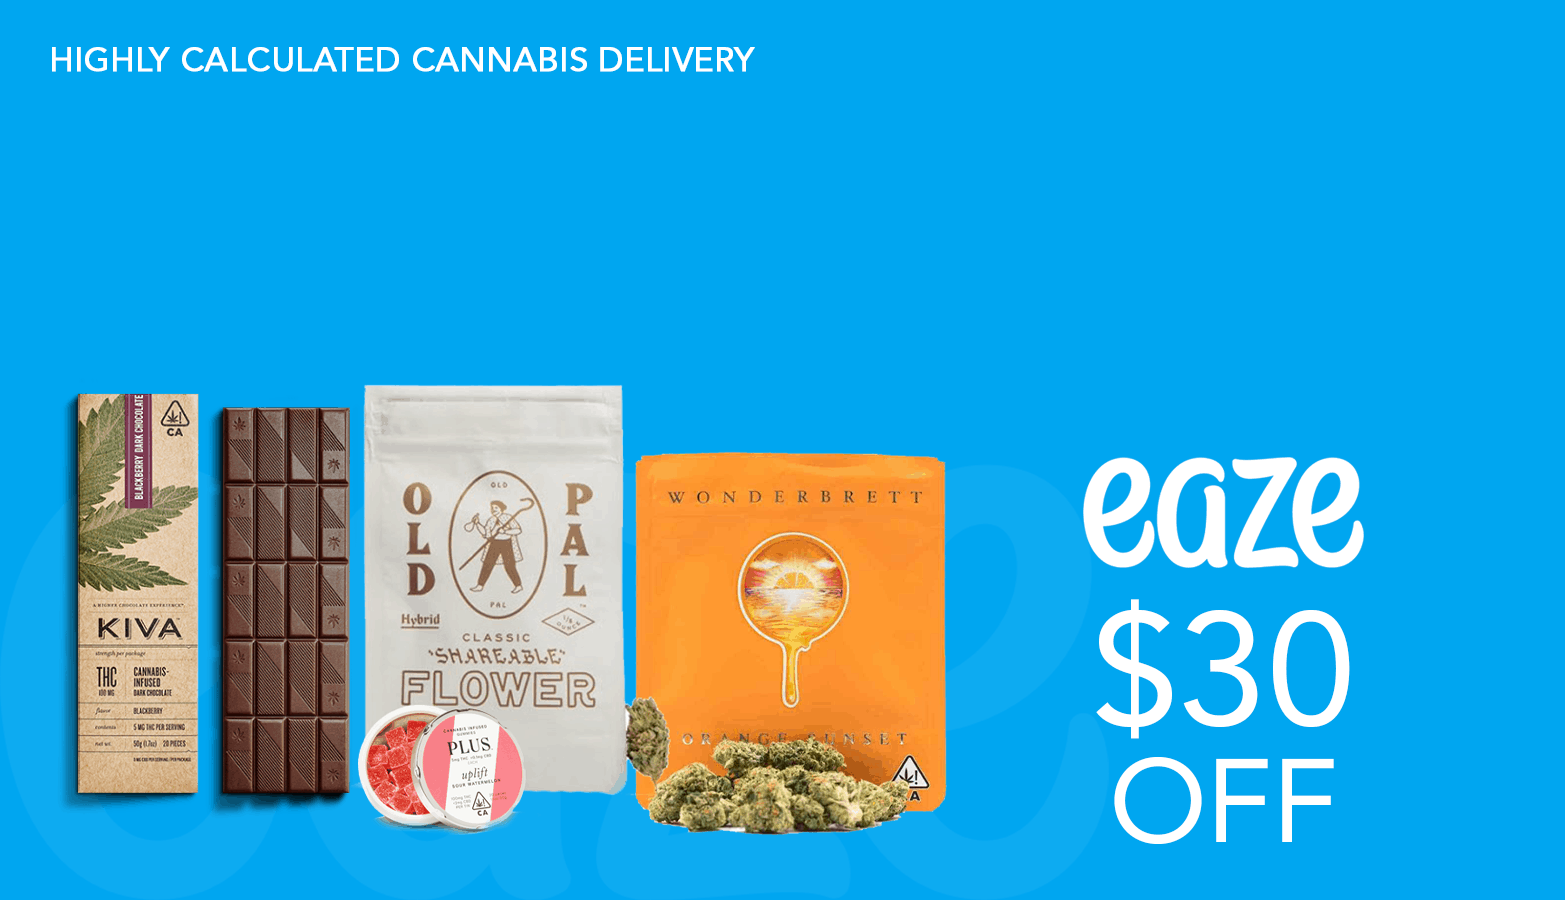 Eaze CBD Coupon Code Offer Website